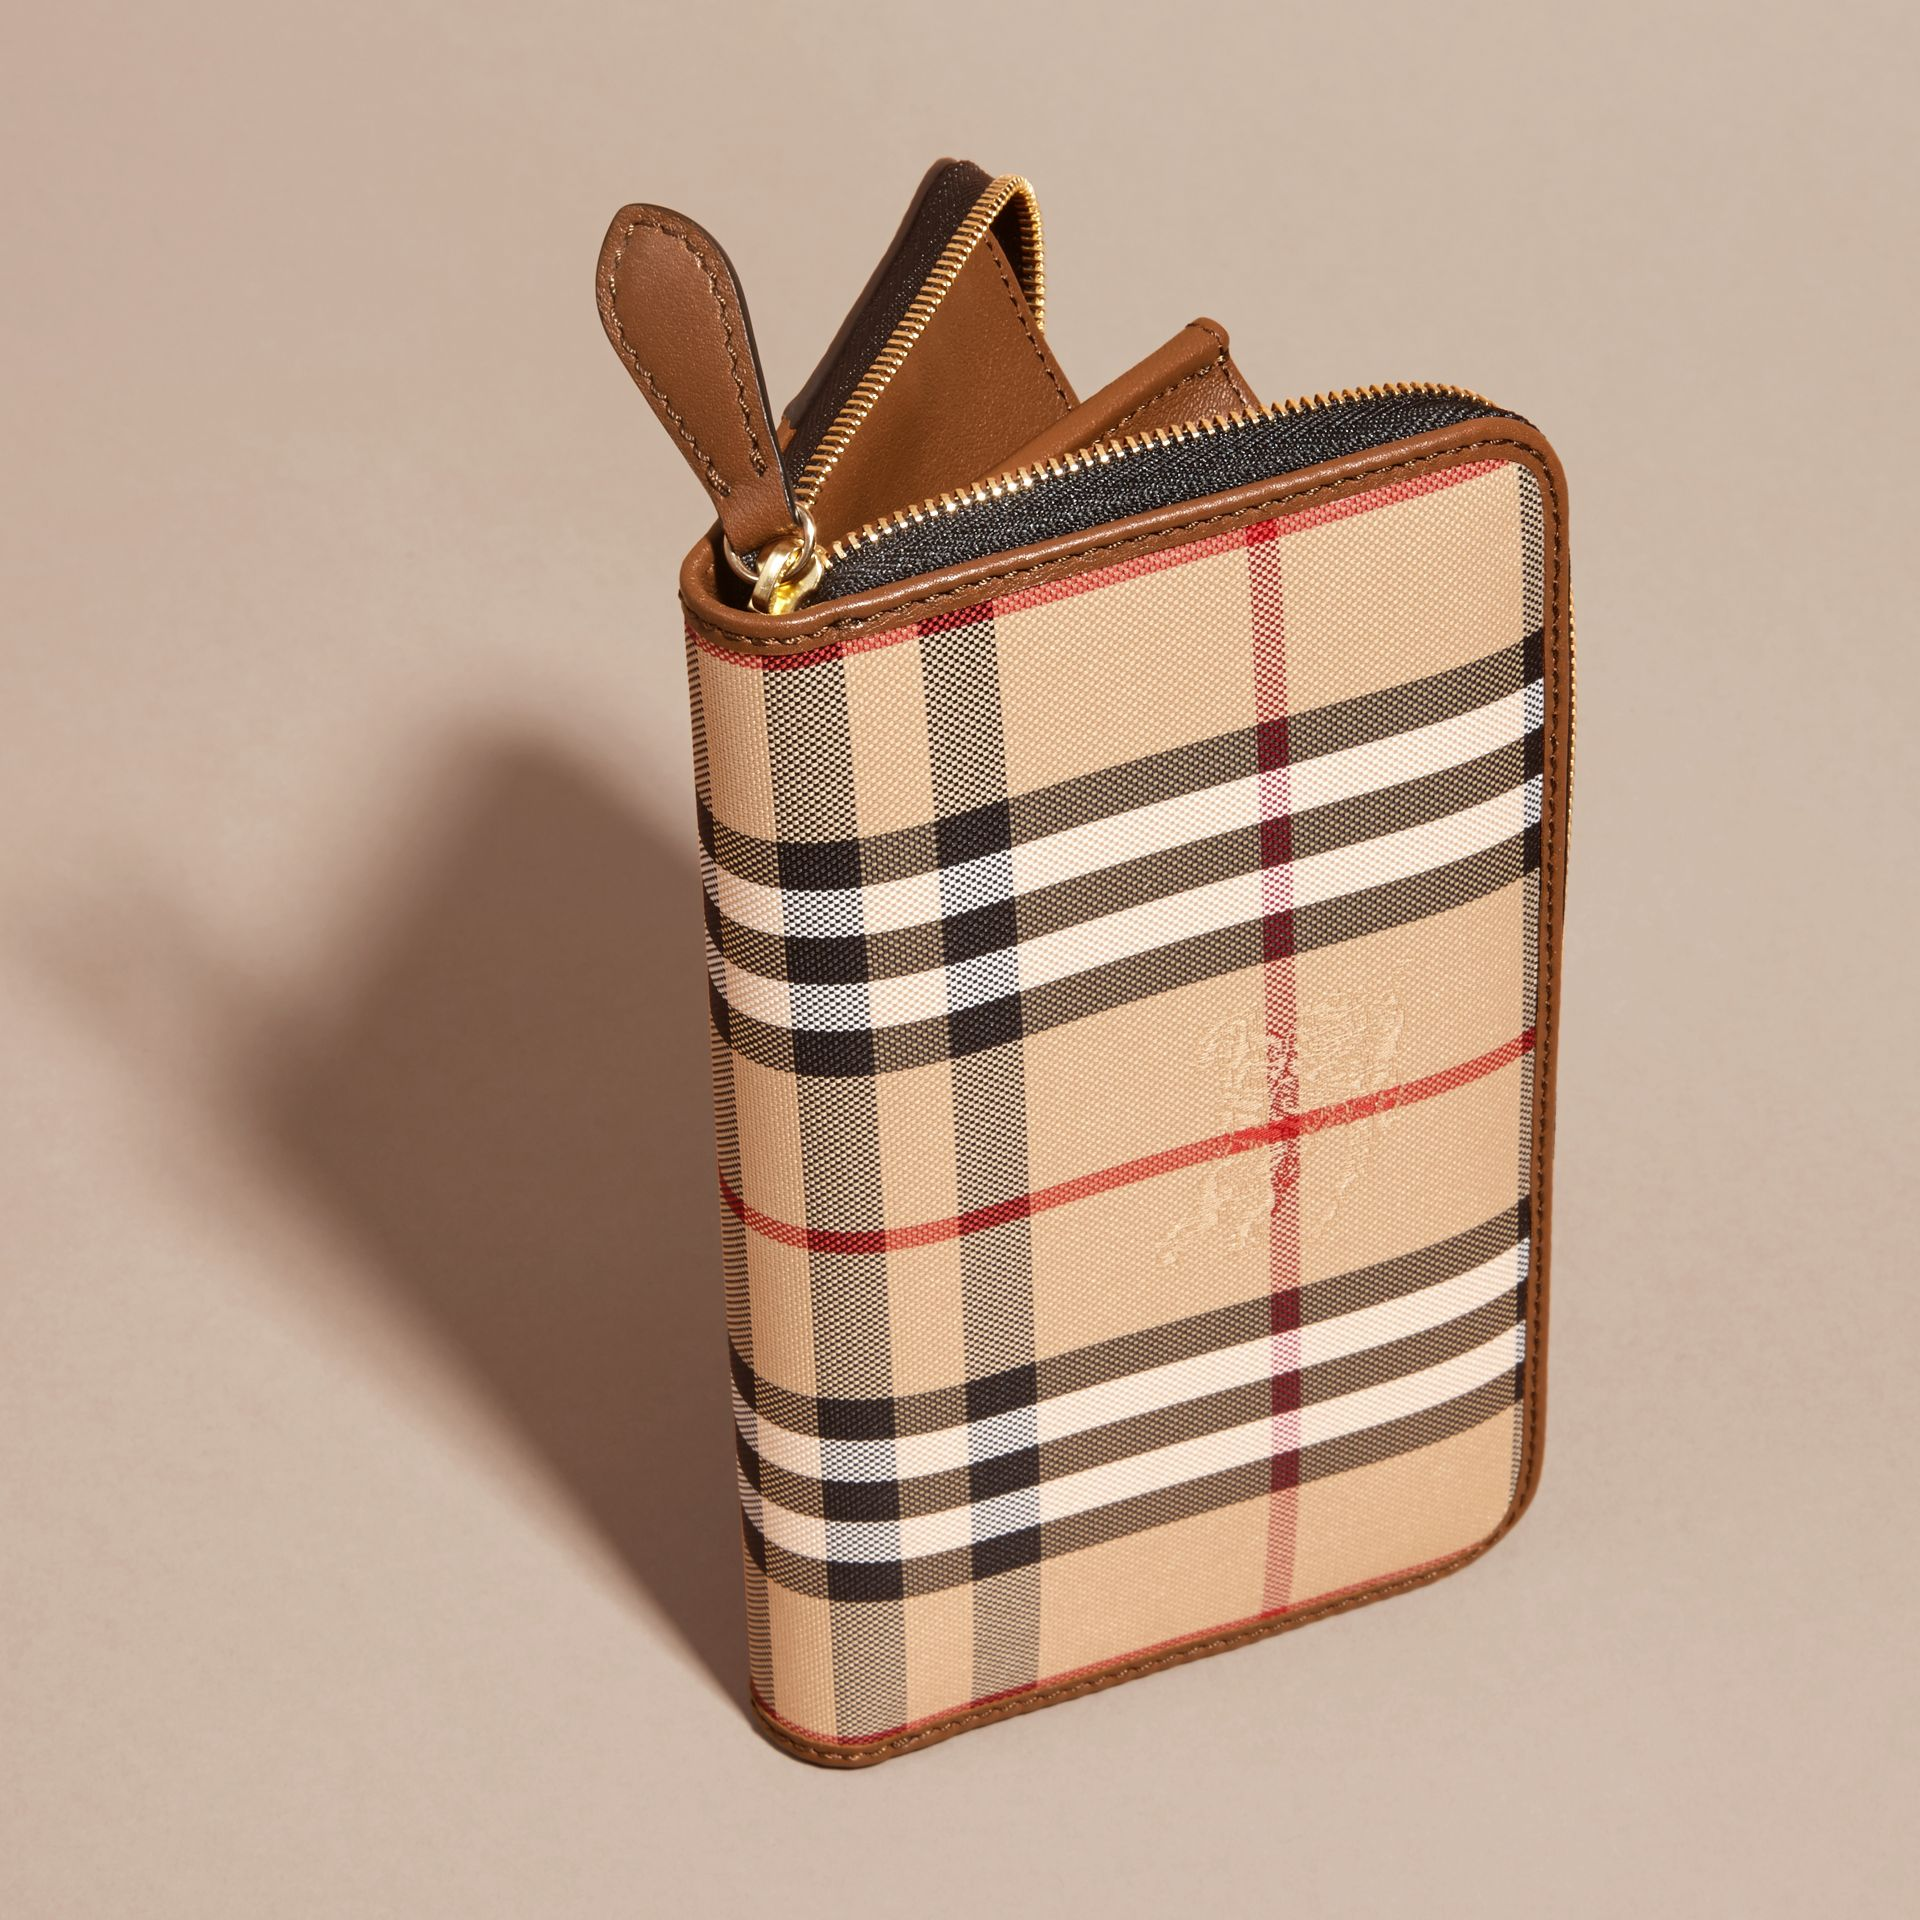 Horseferry Check and Leather Ziparound Wallet in Tan - Women | Burberry - gallery image 4